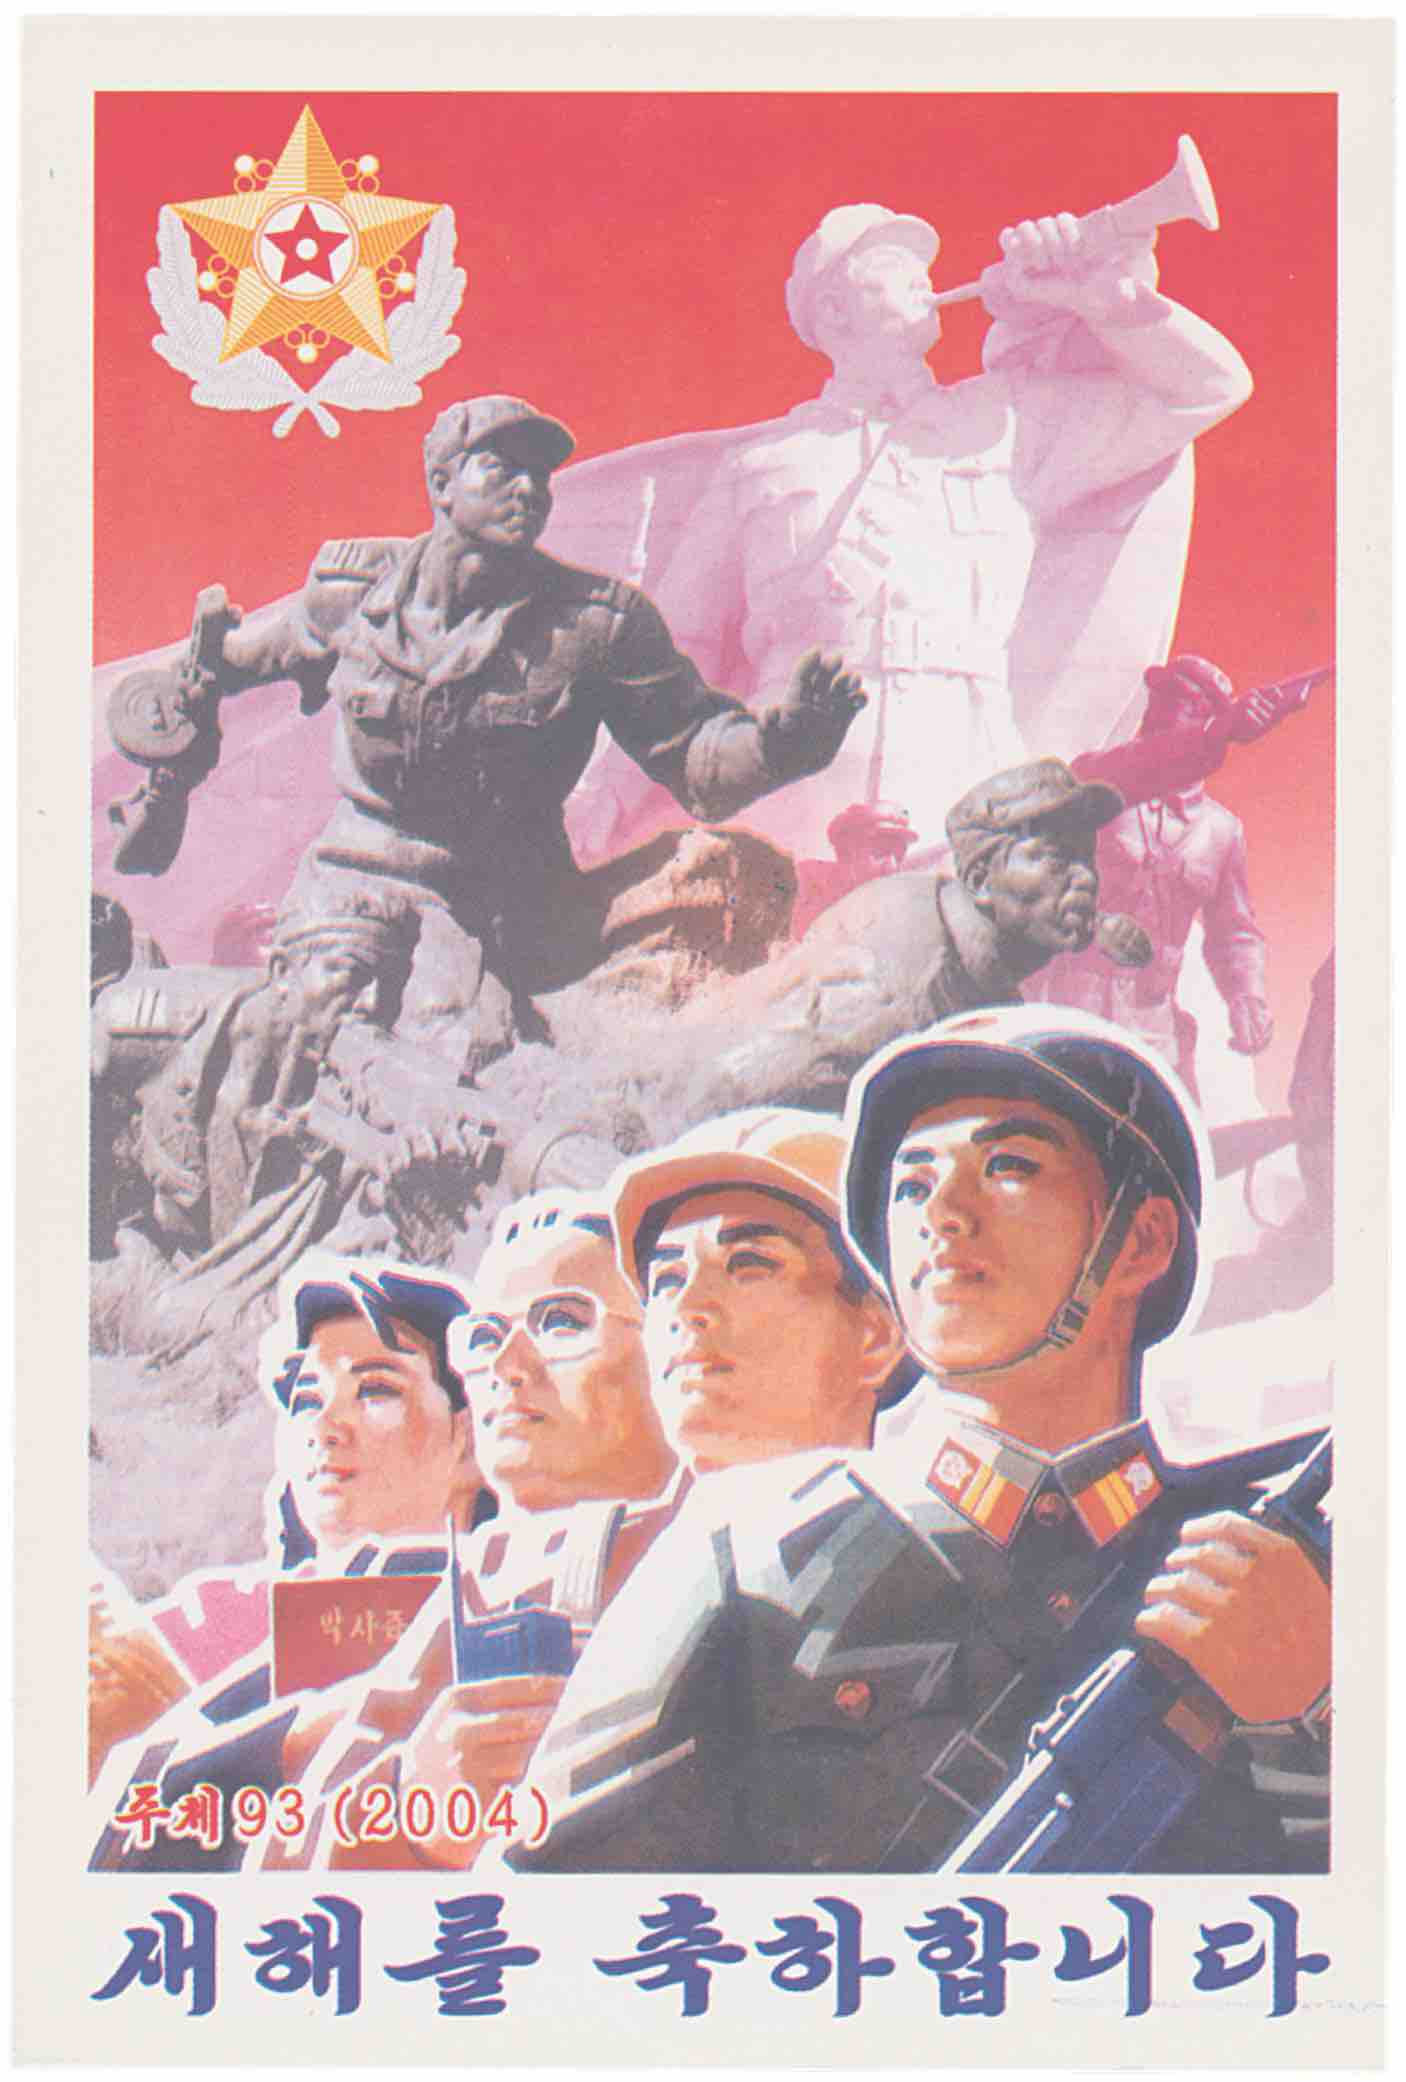 A New Year's postcard from 2004 (Juche year 93) for use by members of the DPRK military services. The emblem (top left) is that of the 'Supreme Commander' (at that time Kim Jong Il). The card shows the various eras of military service. In the background the sculptures are of anti-Japanese guerrillas, then in the mid-ground 'hero soldiers' from the Korean War. In the foreground we see a contemporary soldier with members of the public (from left to right, a farmer, an intellectual and a worker) in unity. The slogan at the bottom reads: 'Happy New Year'.